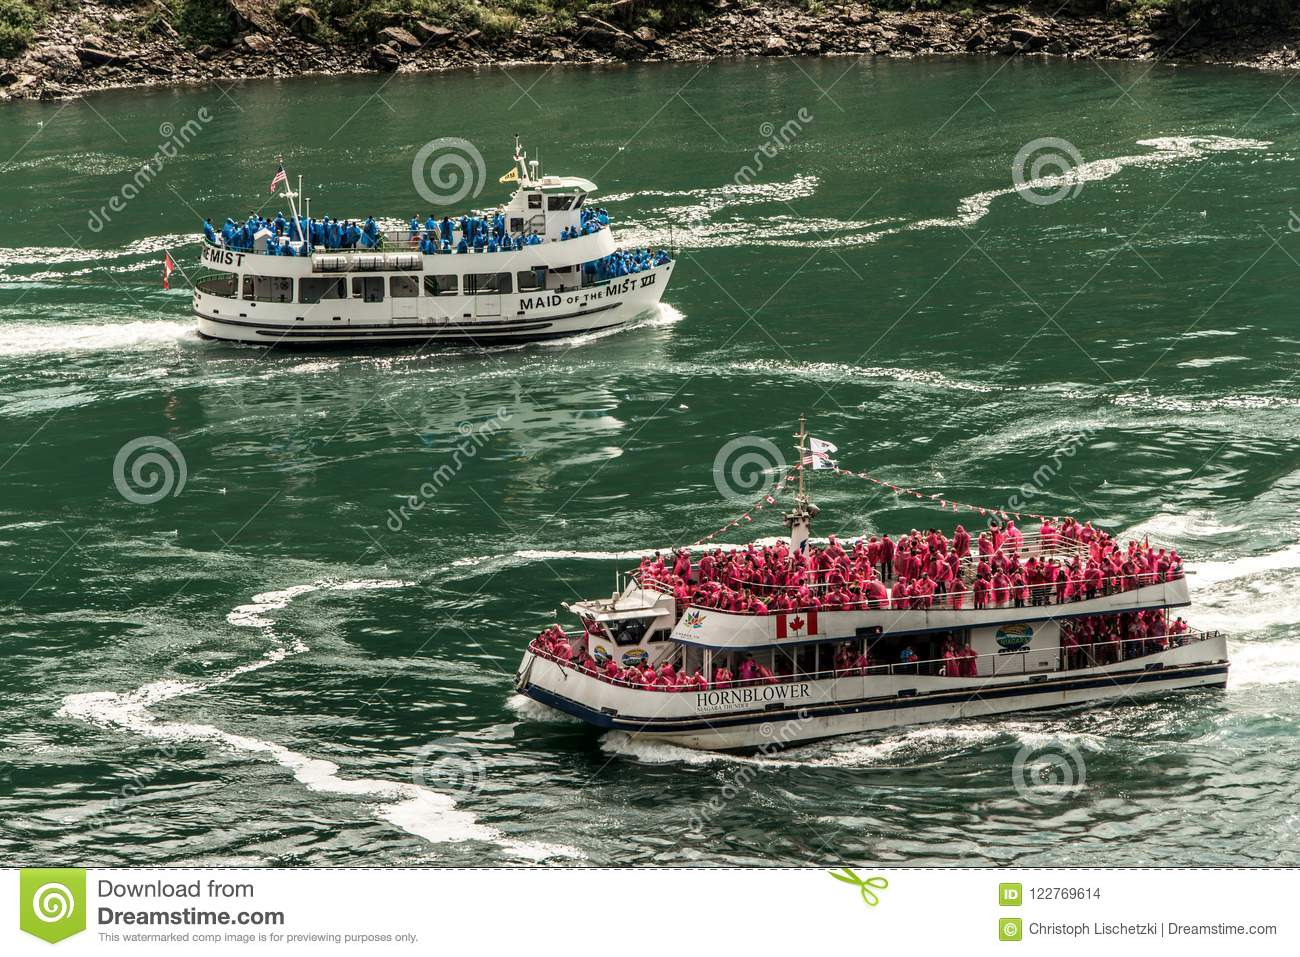 Niagra Ontario Canada 06 09 2017 Tourists Aboard The Maid Of The Mist Boat At The Niagara Falls Usa Editorial Stock Image Image Of Rocks Park 122769614